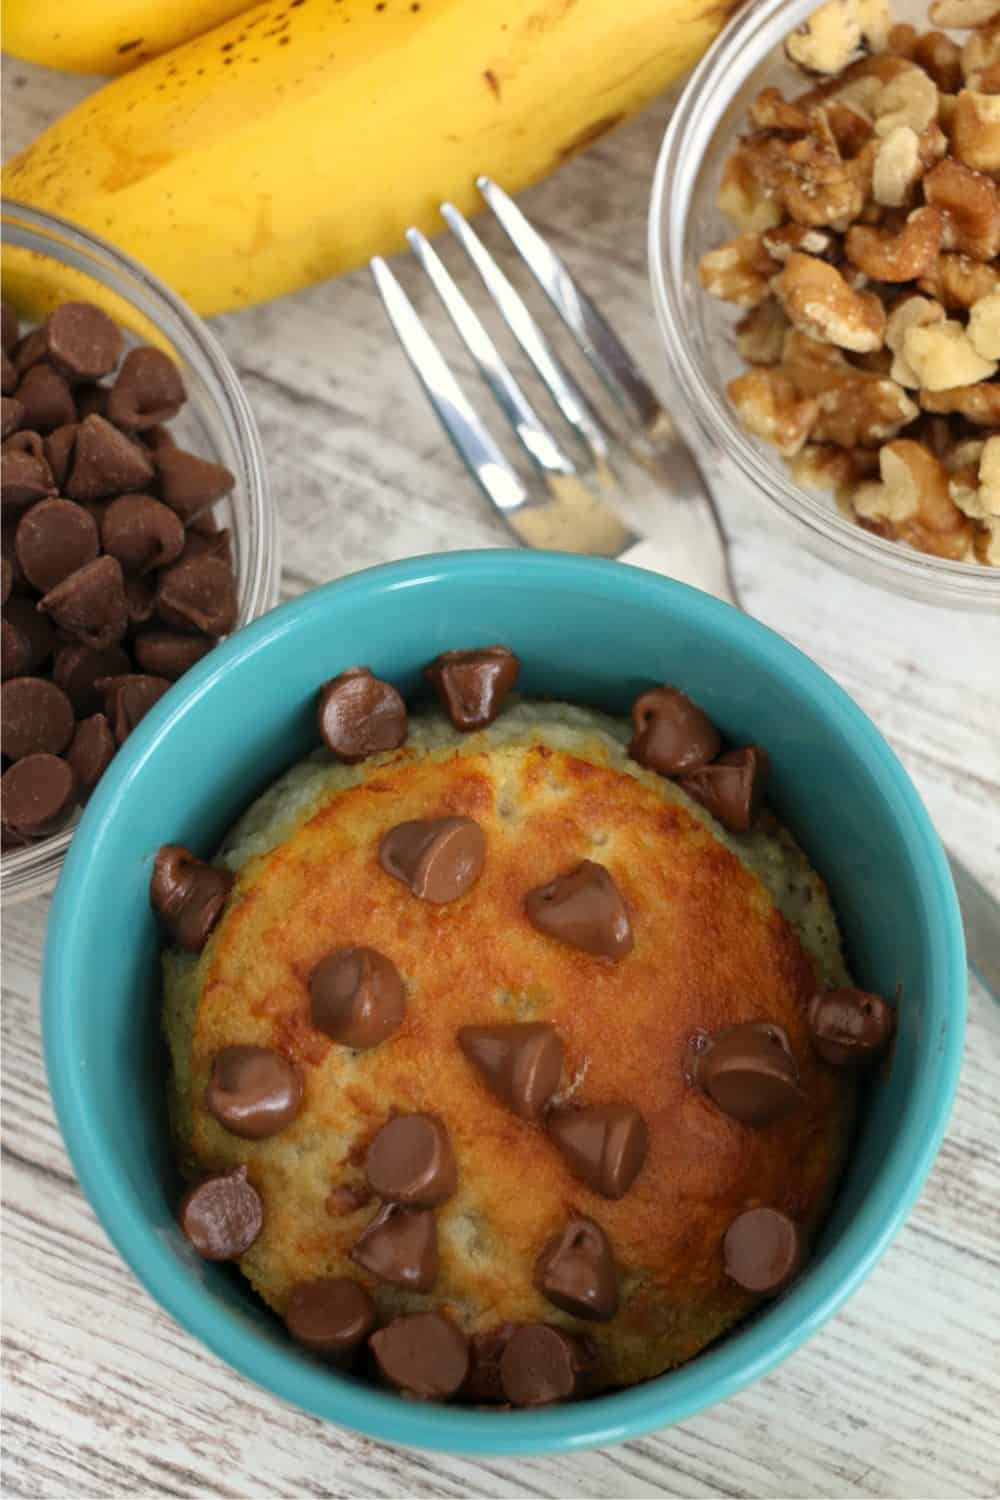 A tight overhead shot of freshly-baked banana mug cake with chocolate chips sprinkled on top and starting to melt. A fork is on the table near the mug, as well as a bowl of chocolate chips, a bowl of chopped walnuts and a banana